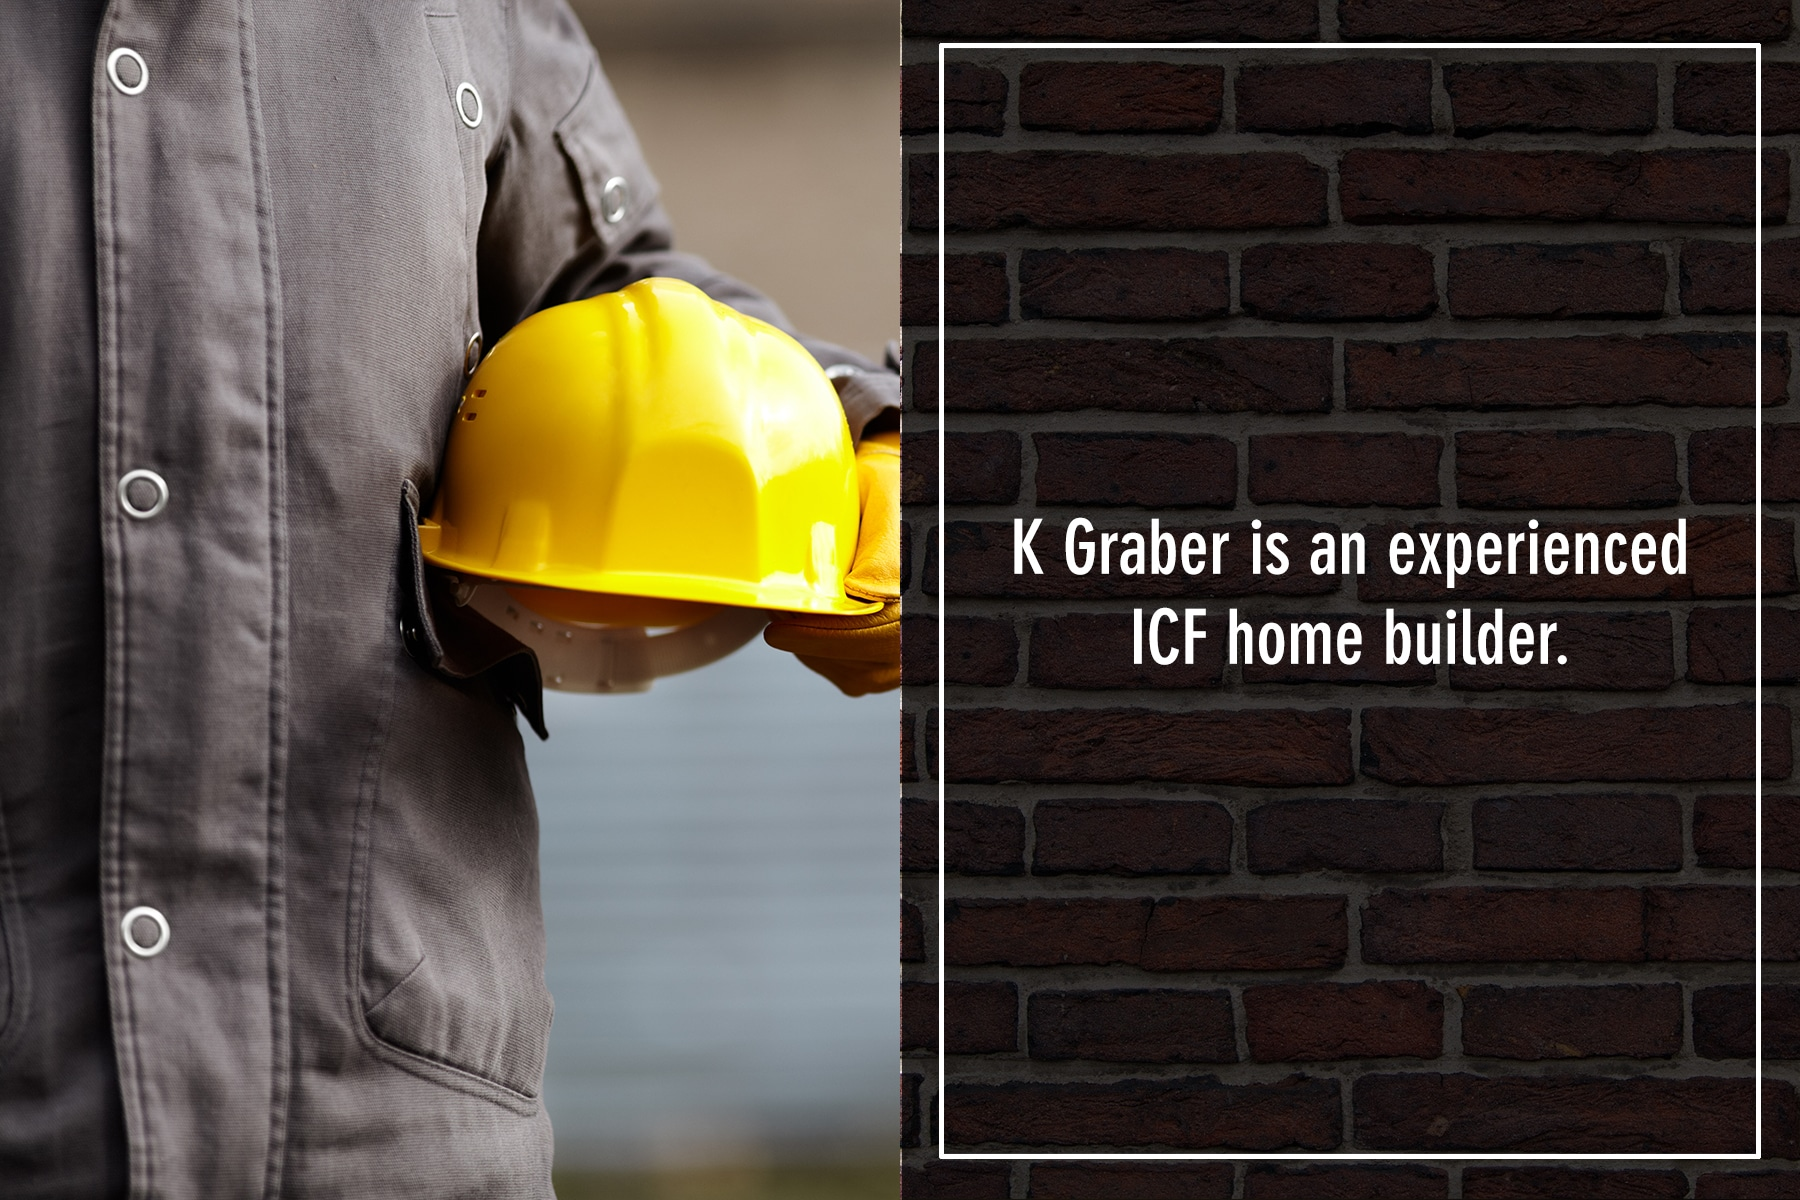 K Graber is an experienced ICF home builder